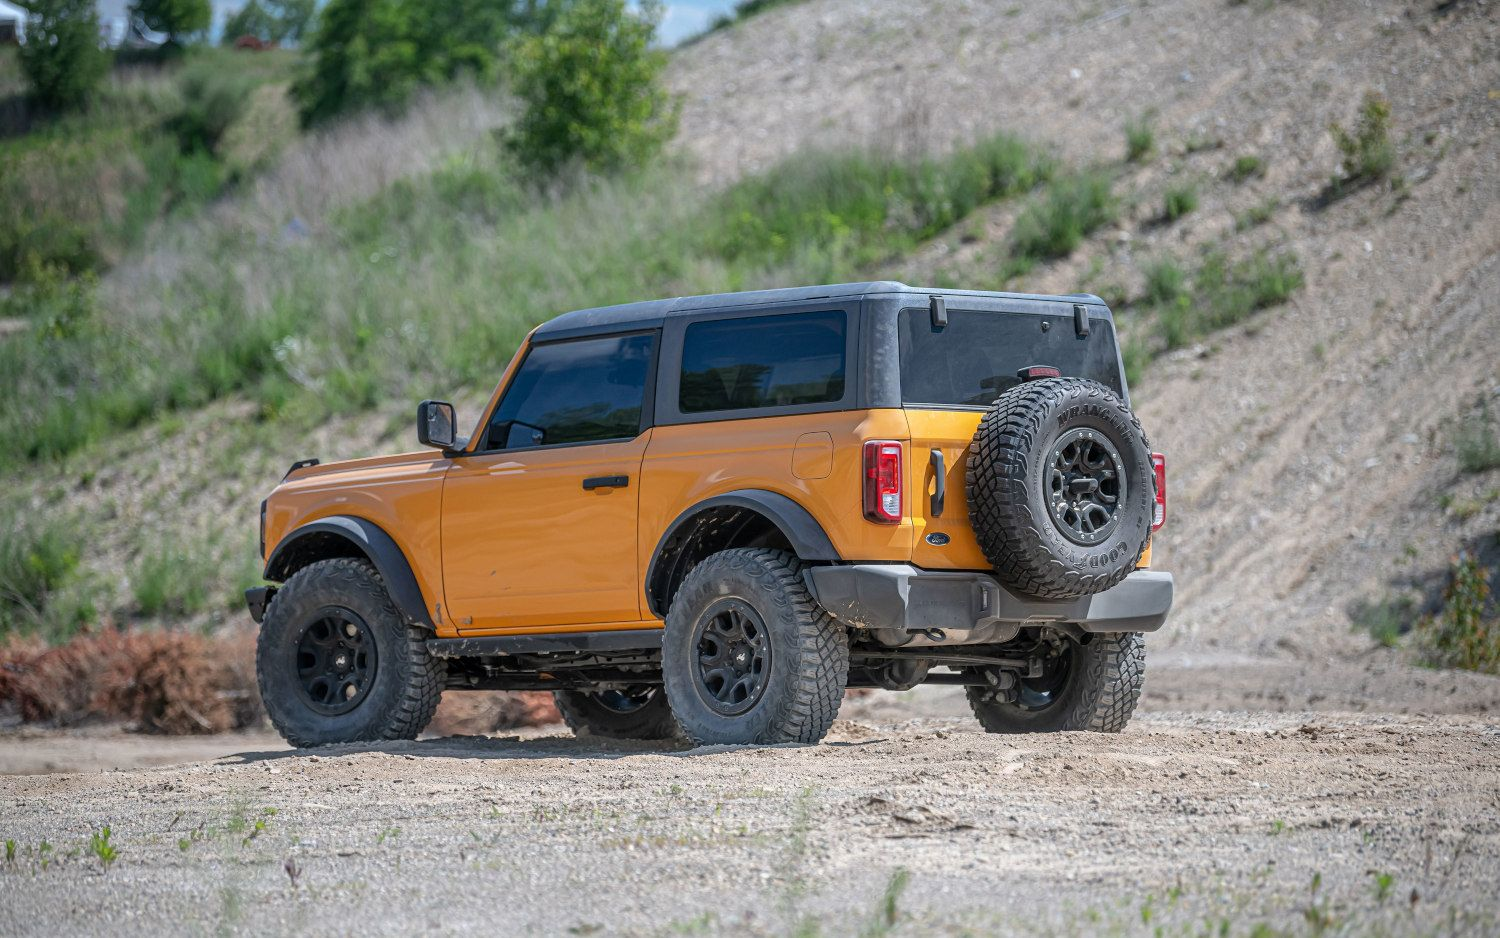 Ford Bronco Outer Banks 2 Door 2021 In 2020 Ford Bronco Ford Bronco 2 Bronco